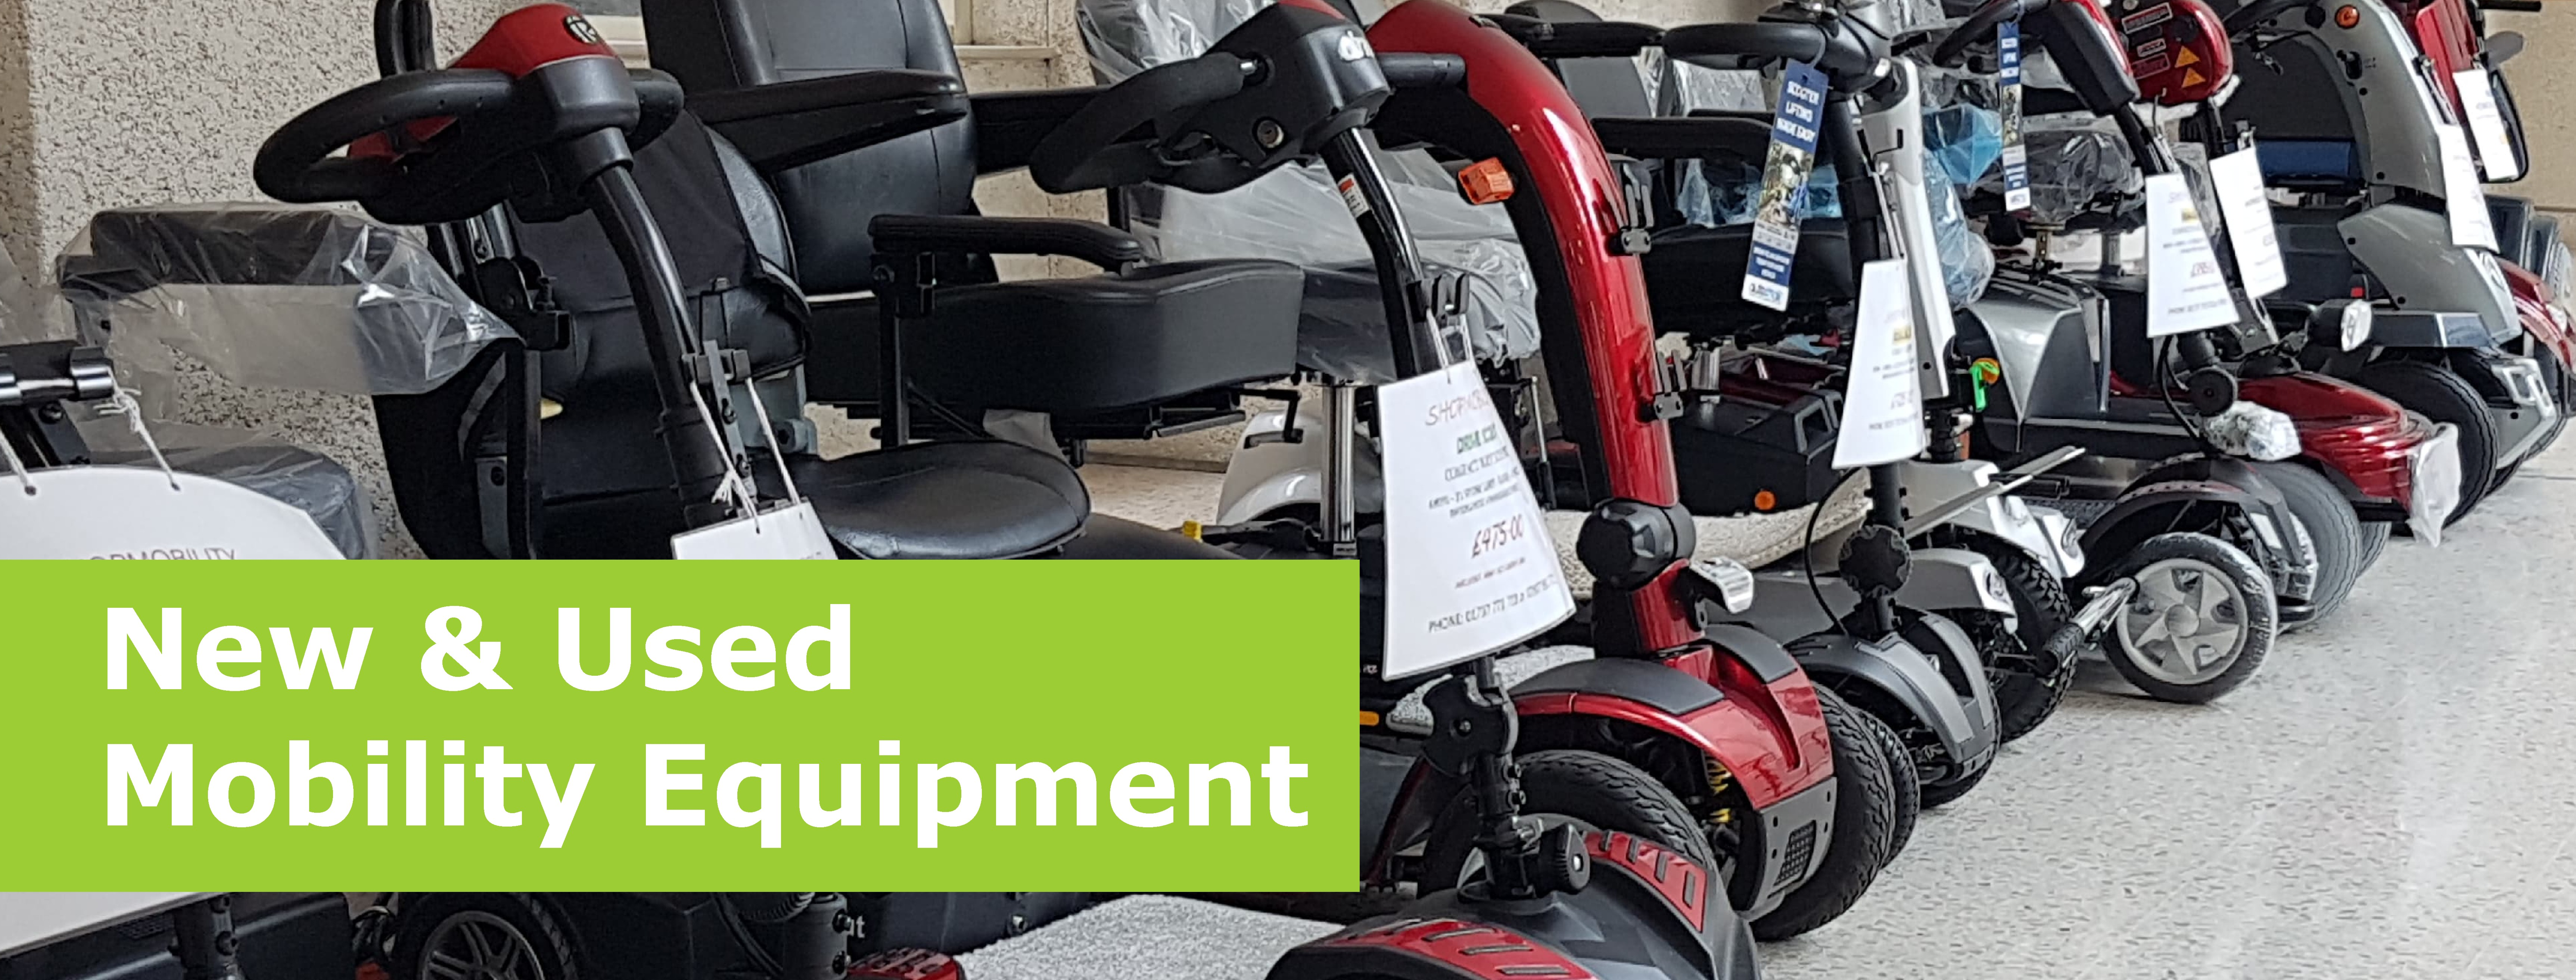 New and used mobility equipment